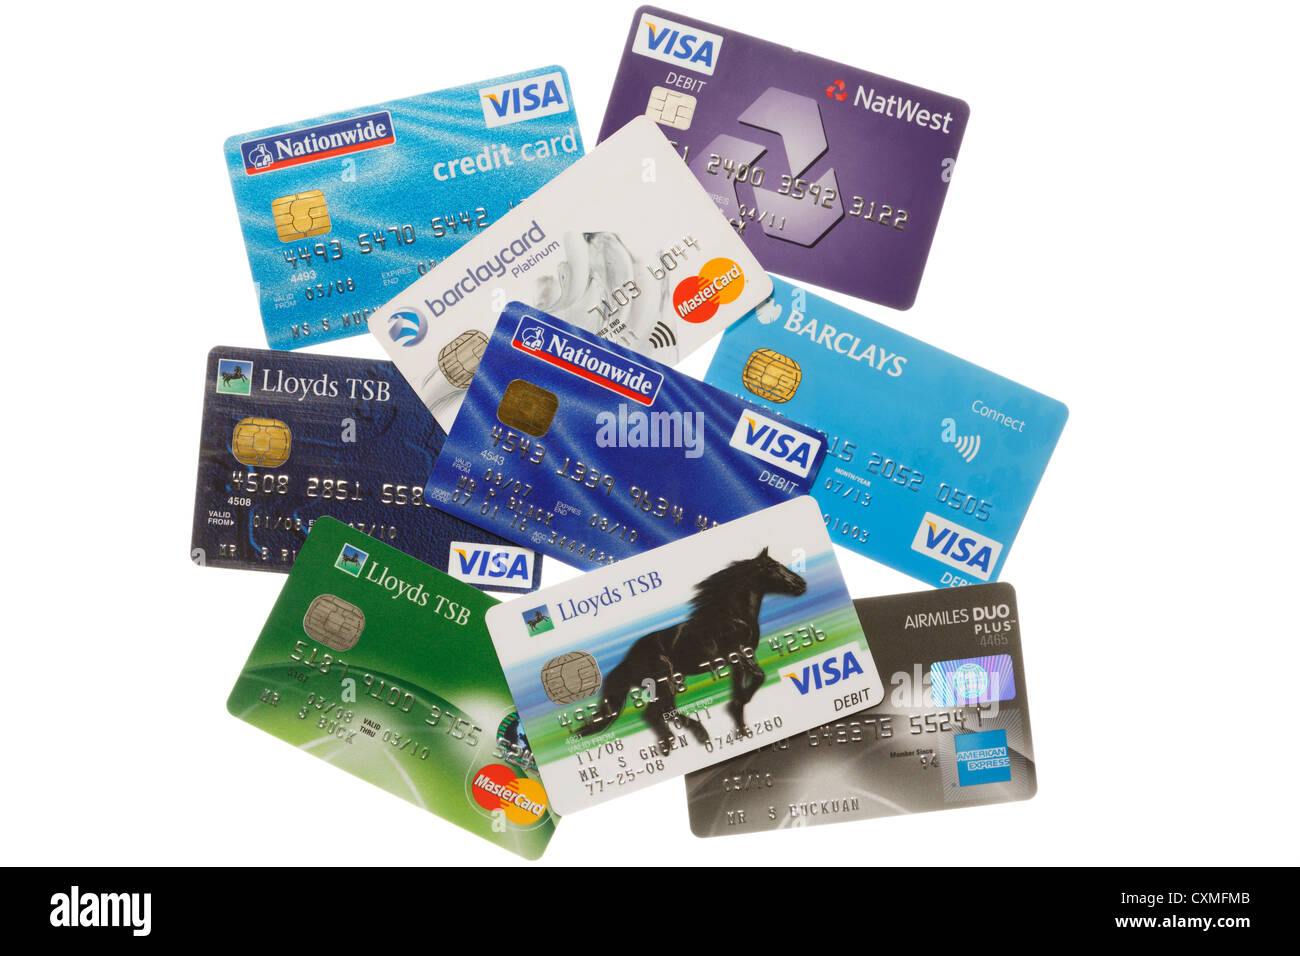 Various bankcards from Nationwide, Lloyds TSB and Nat West banks isolated on a white background. England UK Britain Stock Photo